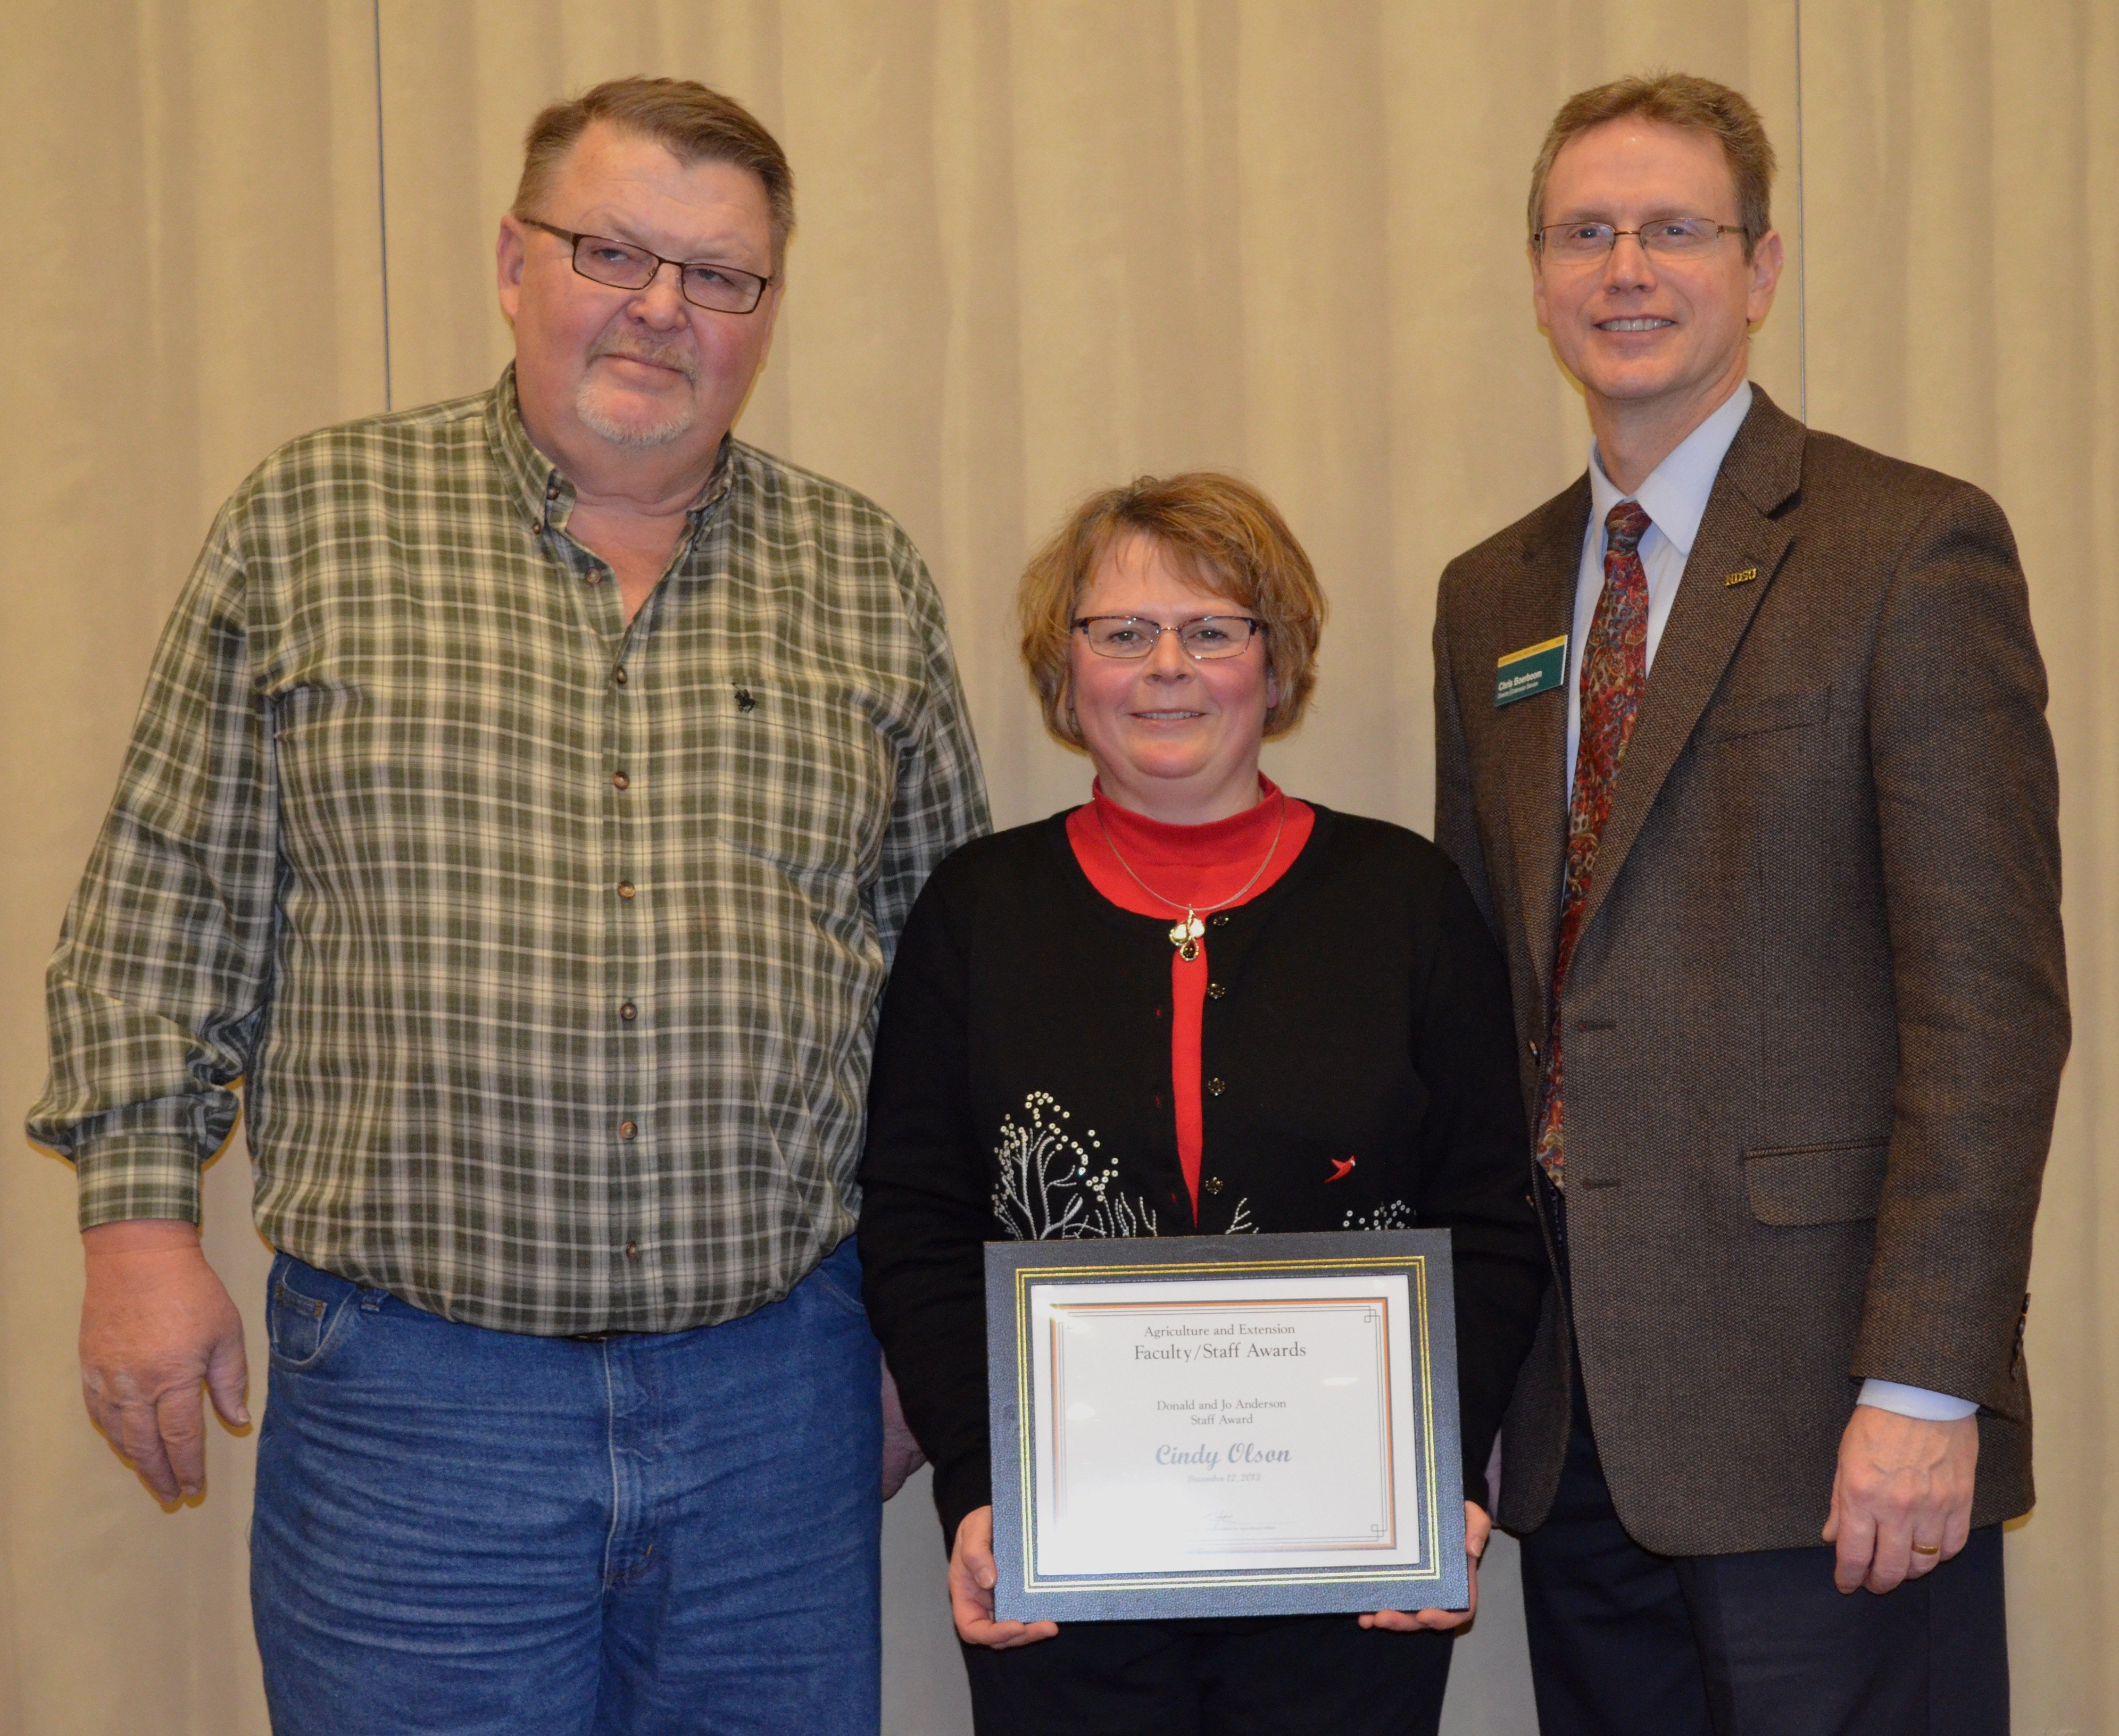 Cindy Olson, administrative assistant, Ramsey County Extension office, receives the Donald and Jo Anderson Staff Award from NDSU Extension Service Director Chris Boerboom, right, with Extension agent Bill Hodous, Ramsey County, at her side.